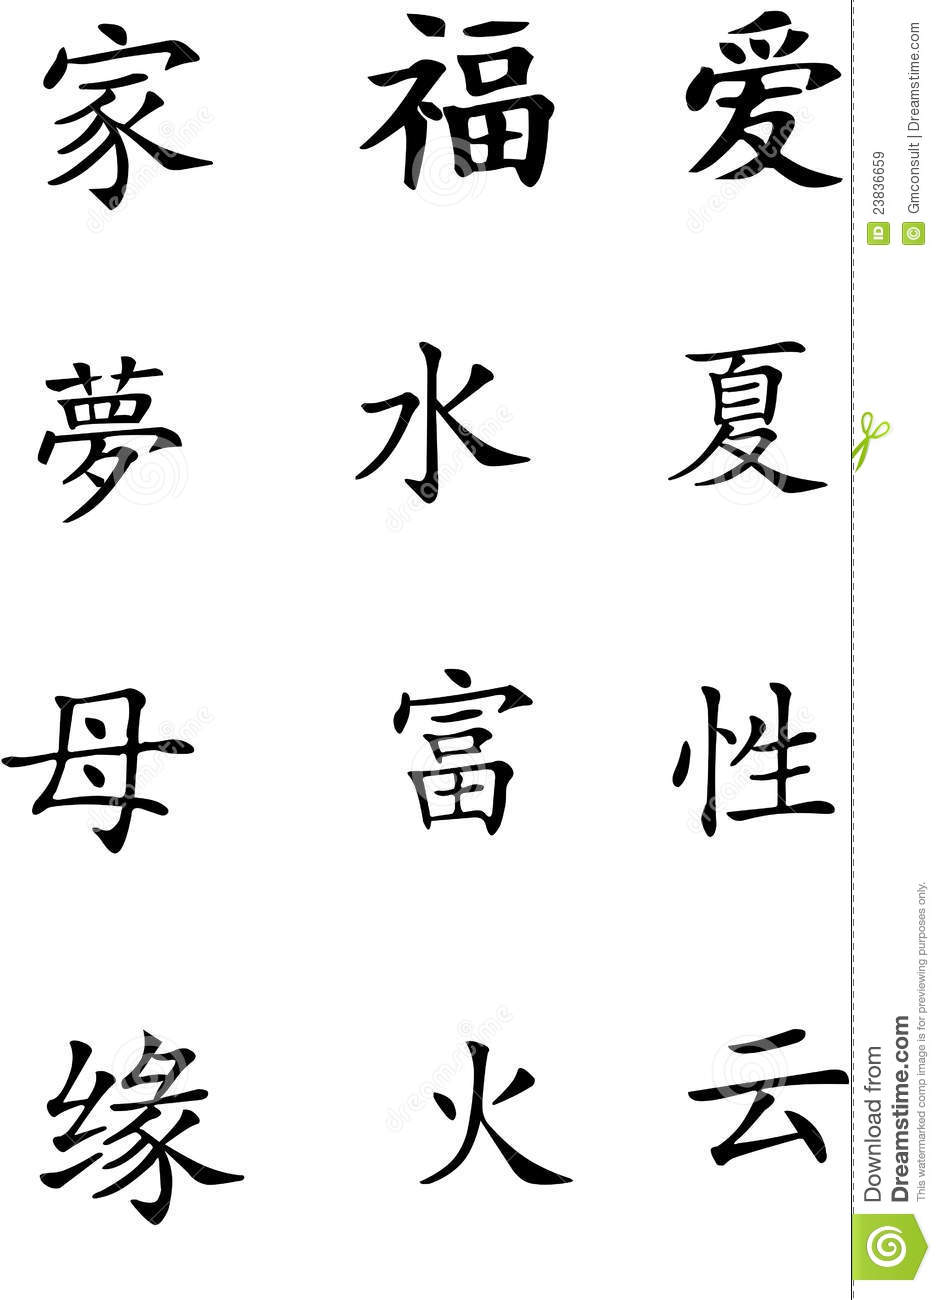 chinese signs c royalty free stock images image 23836659